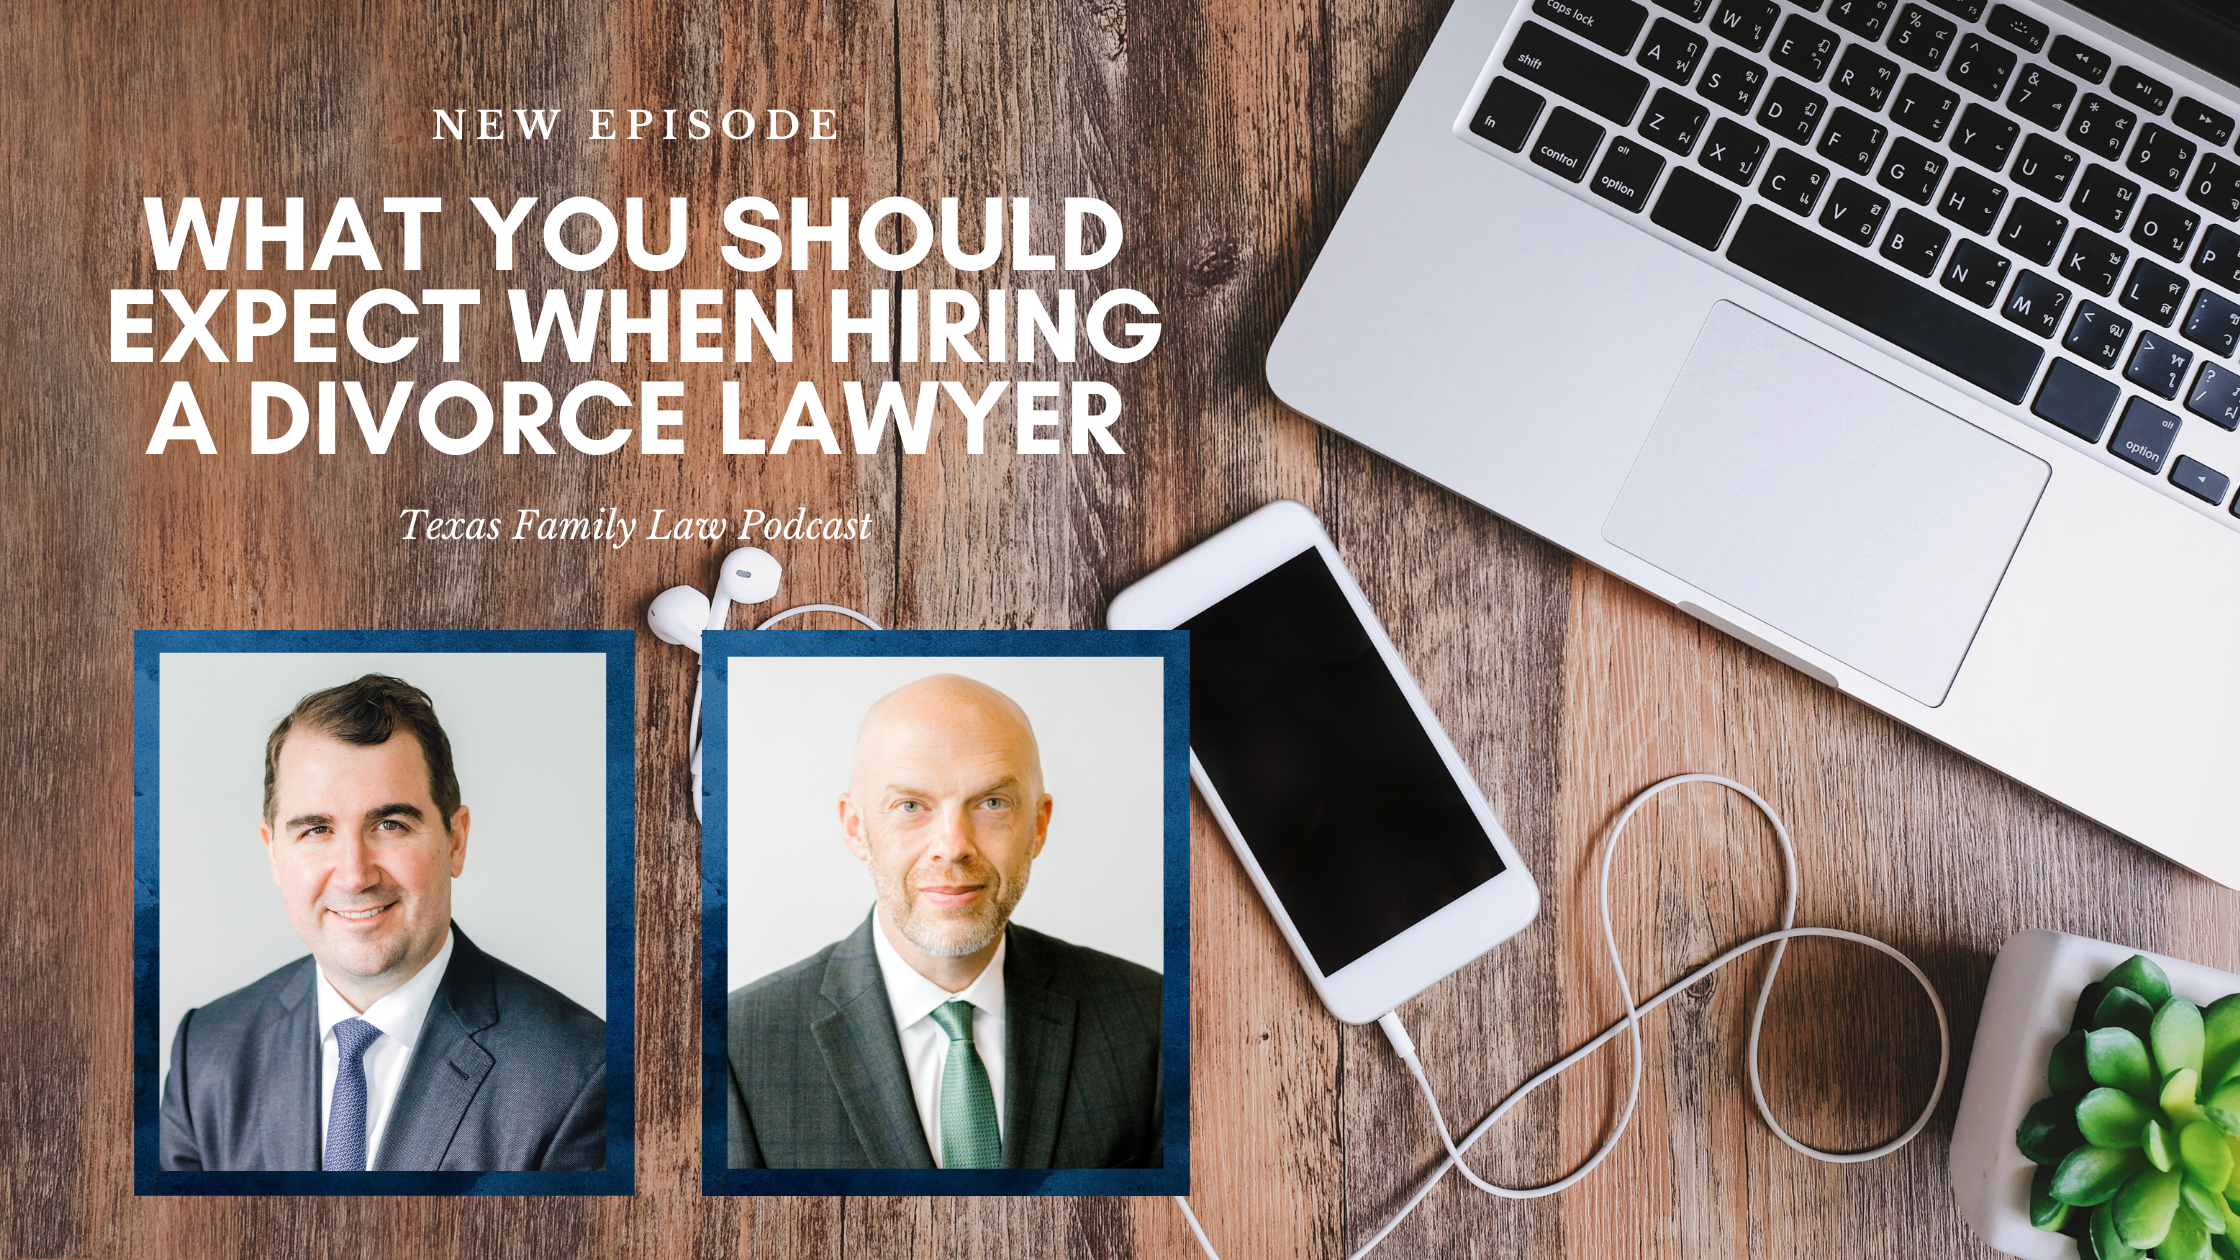 The Texas Family Law Podcast: What You Should Expect When Hiring a Divorce Lawyer